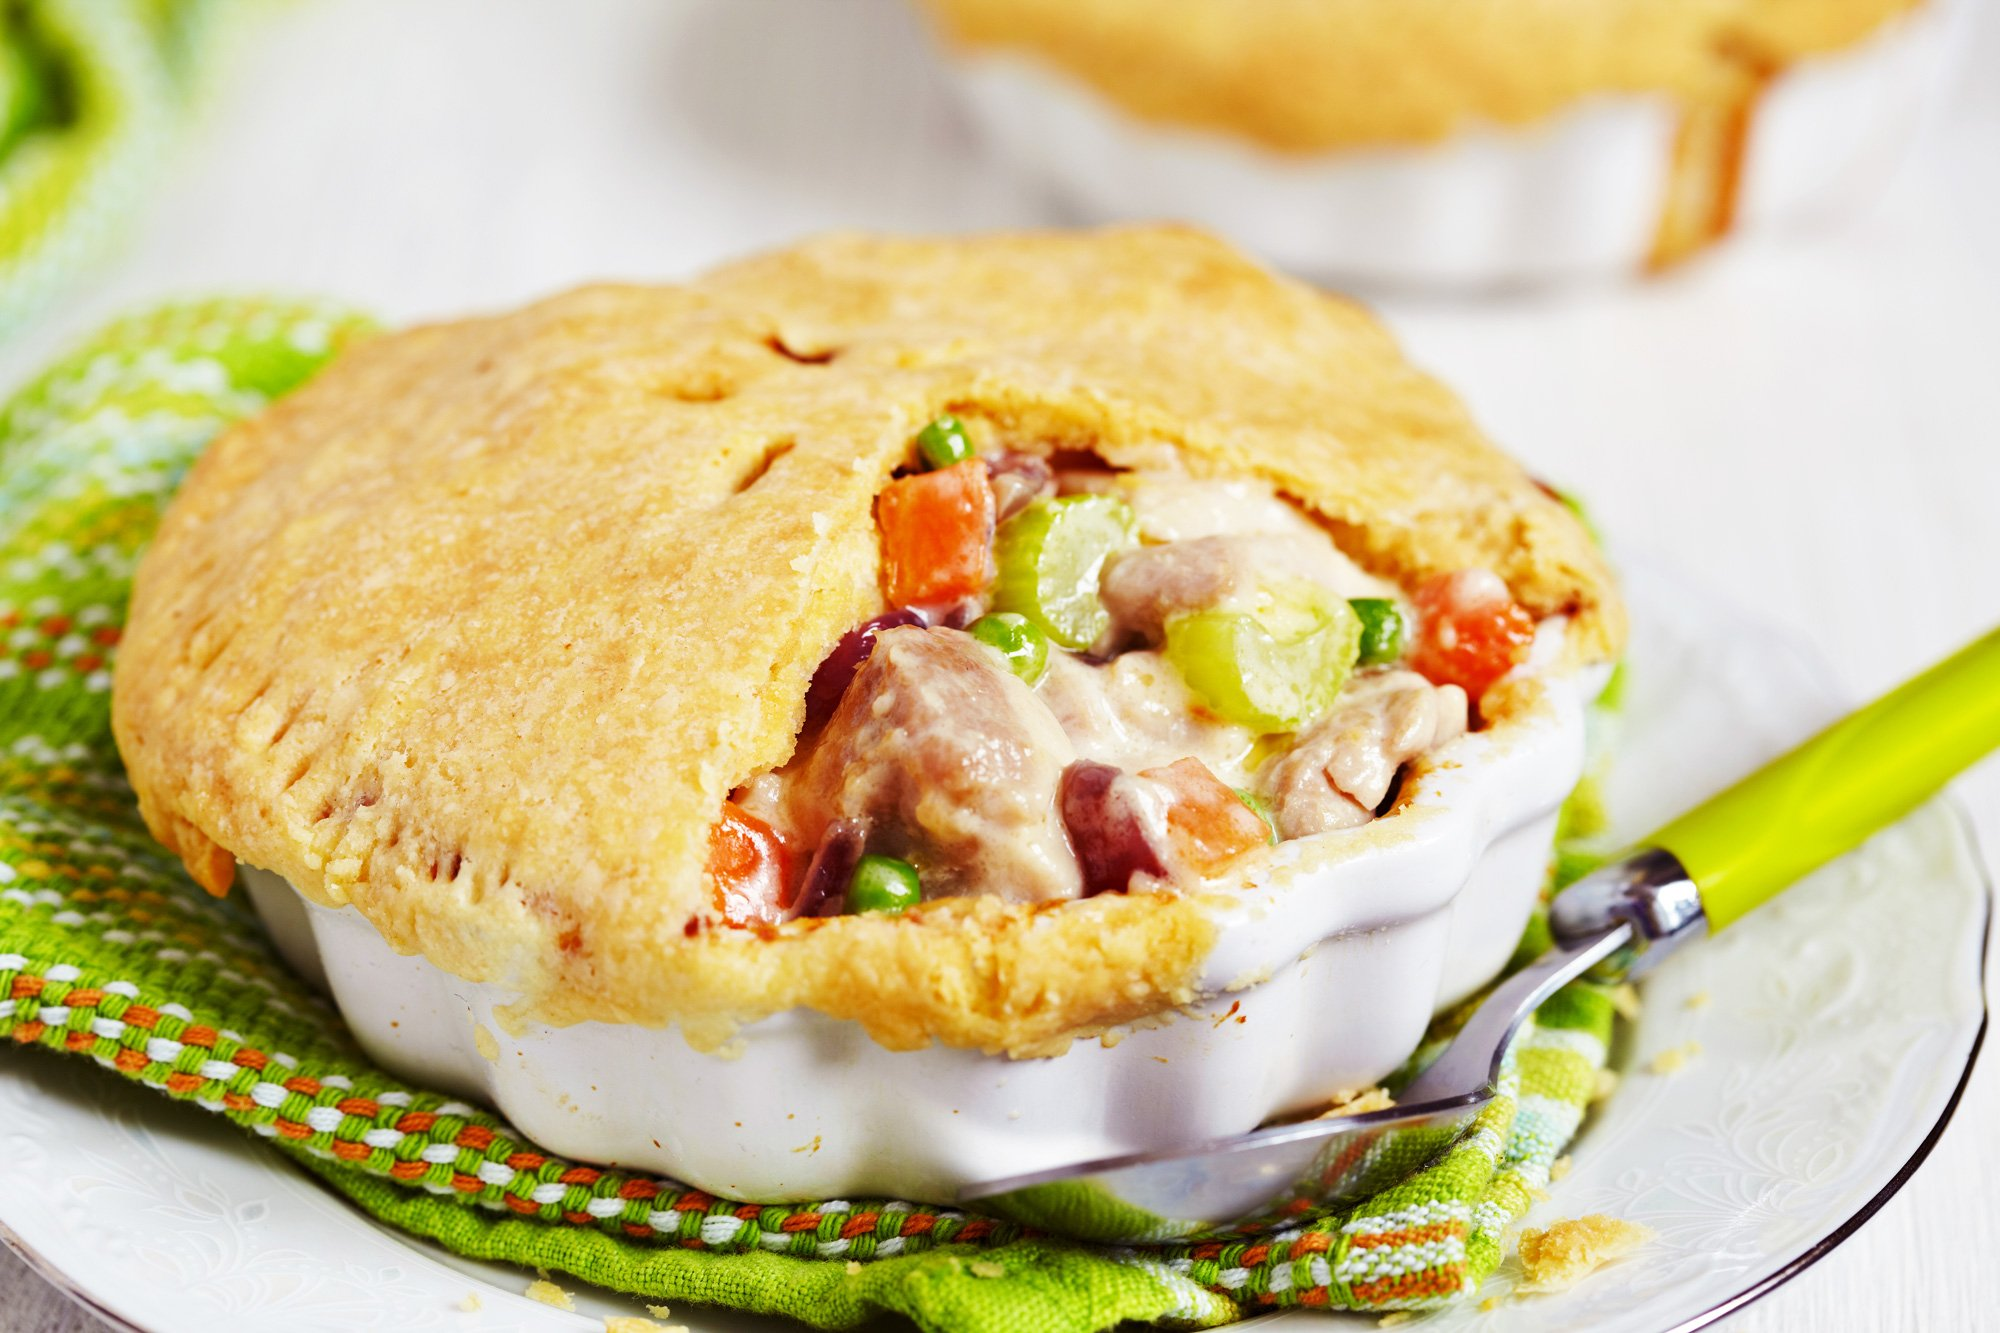 Sonja's Chicken Pot Pie